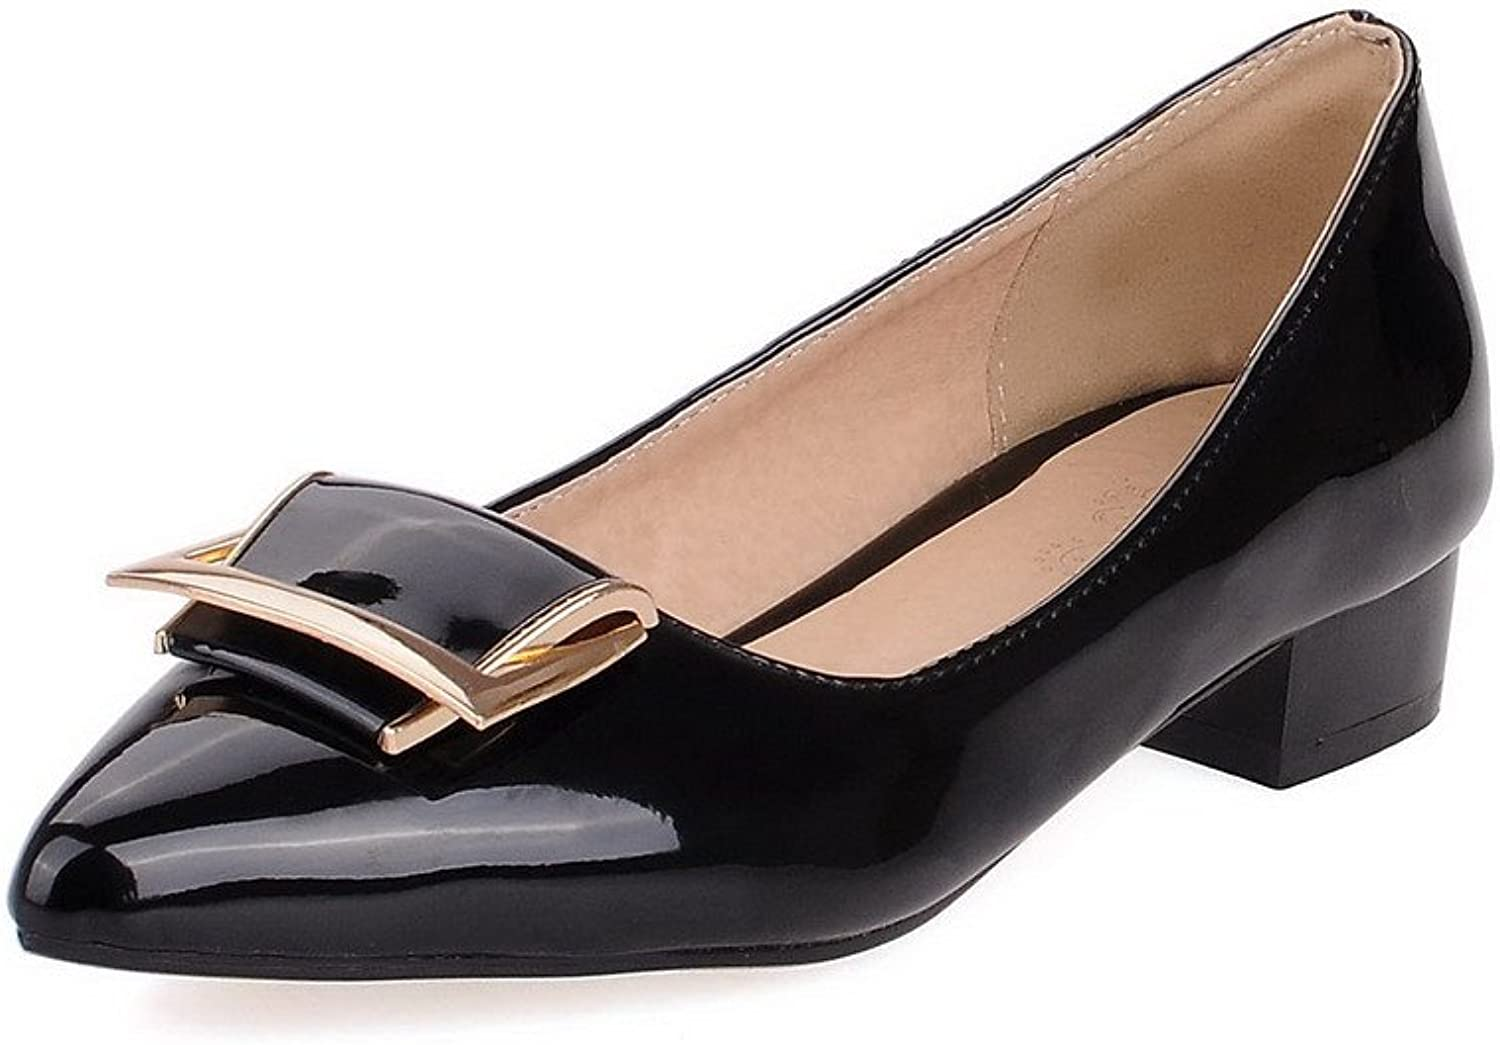 WeiPoot Women's Enamelled Leather Low Heels Pointed Closed Toe Solid Pull On Pumps-shoes